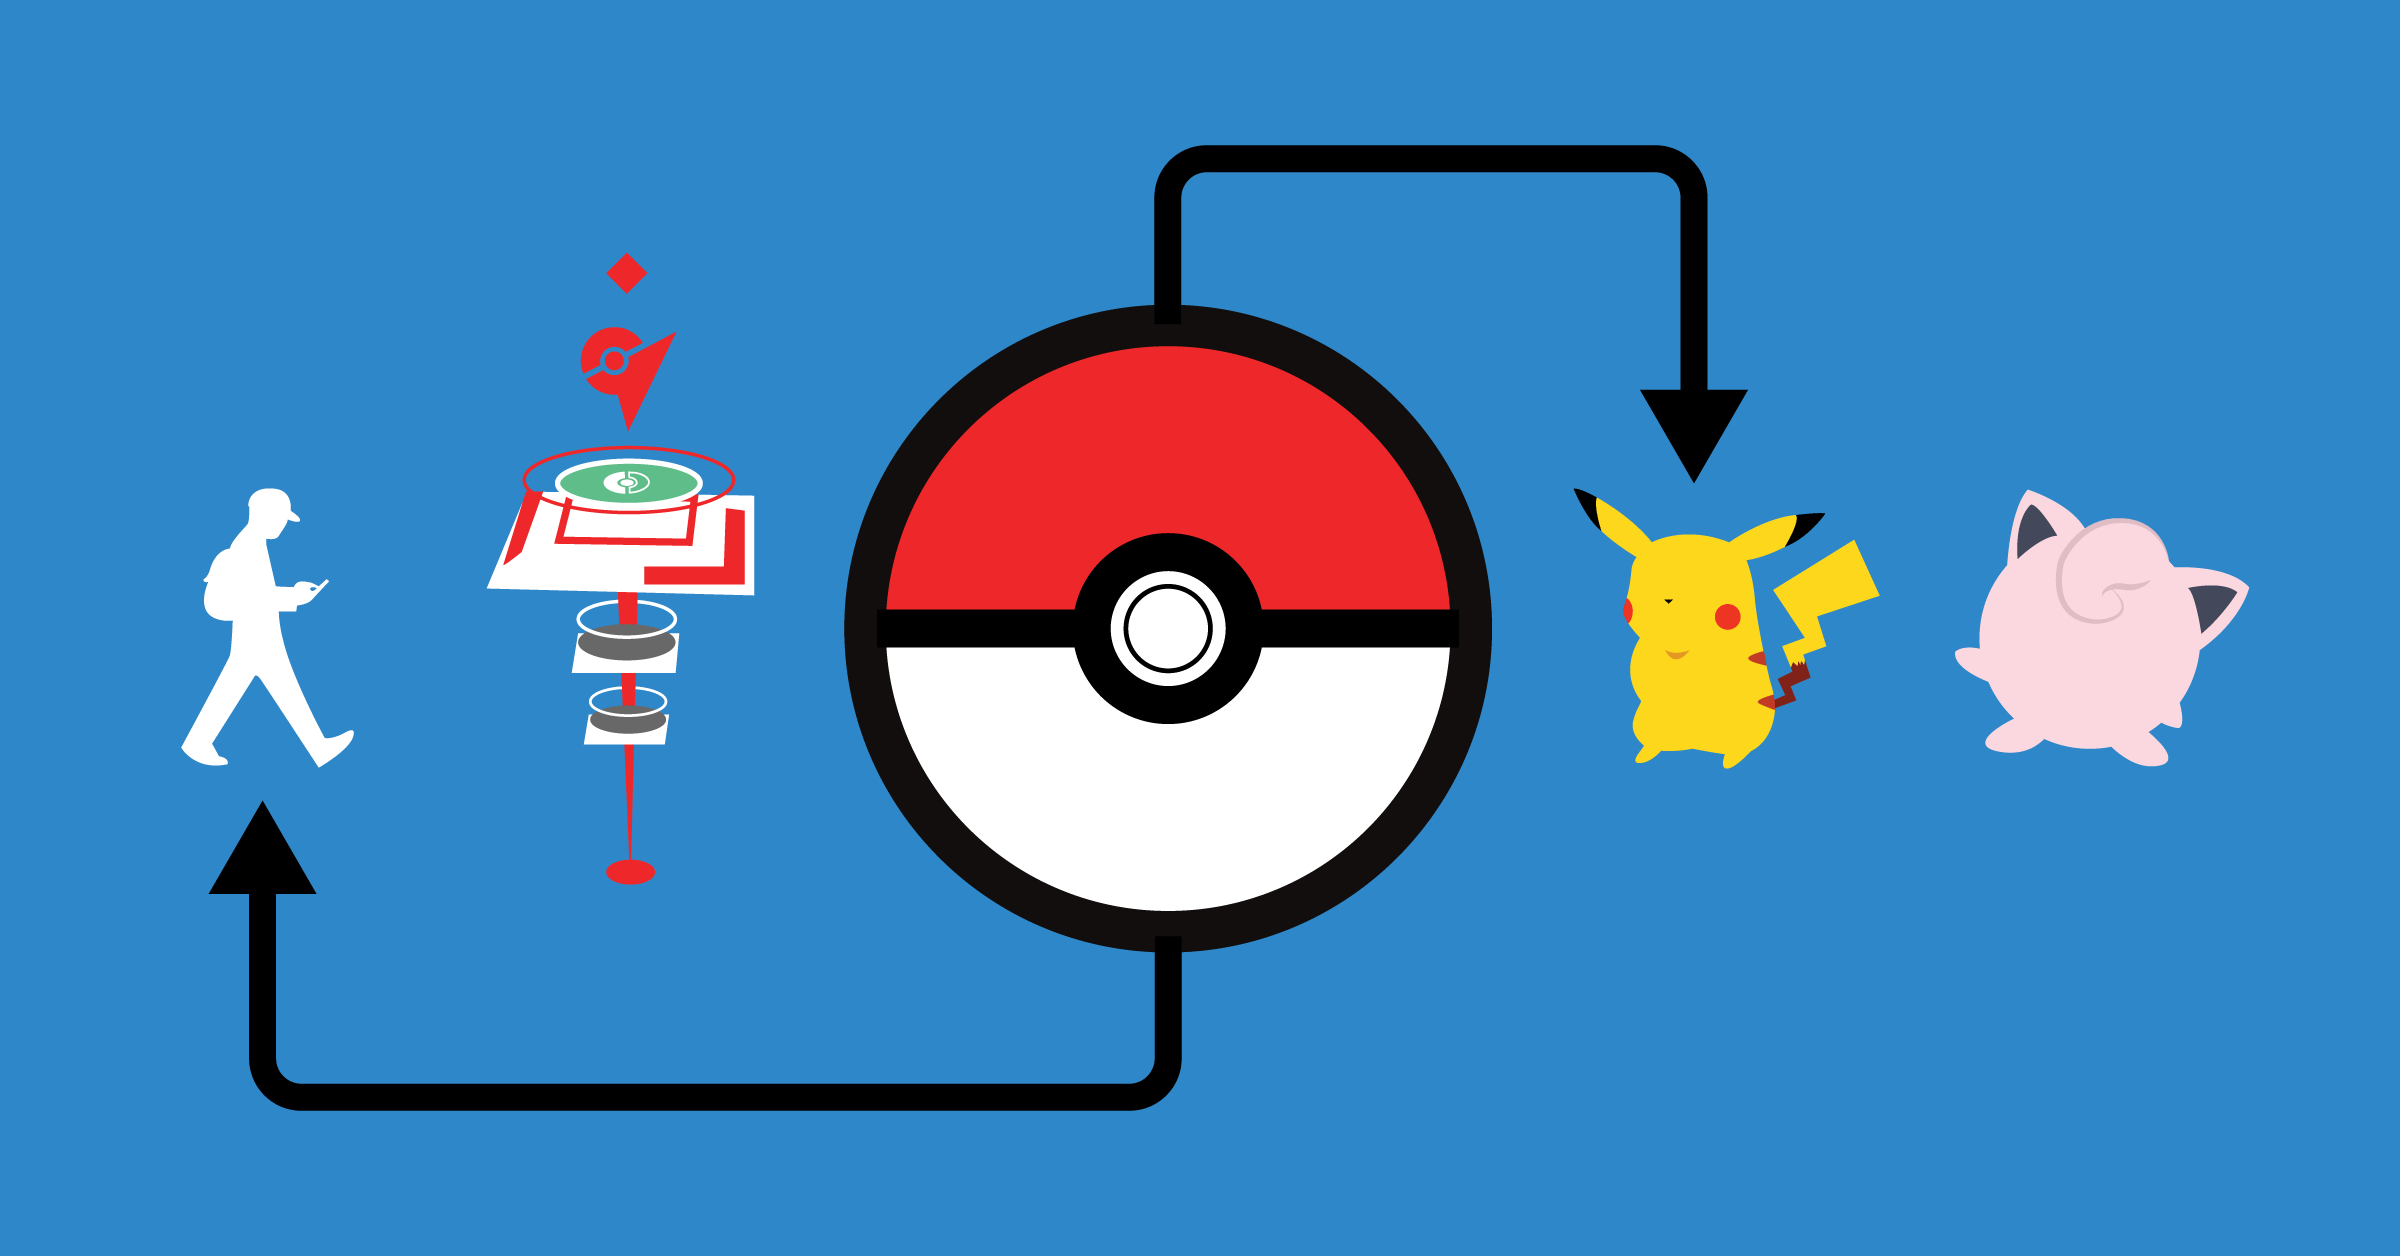 Pokémon Go Flowchart: How To Catch 'Em All!